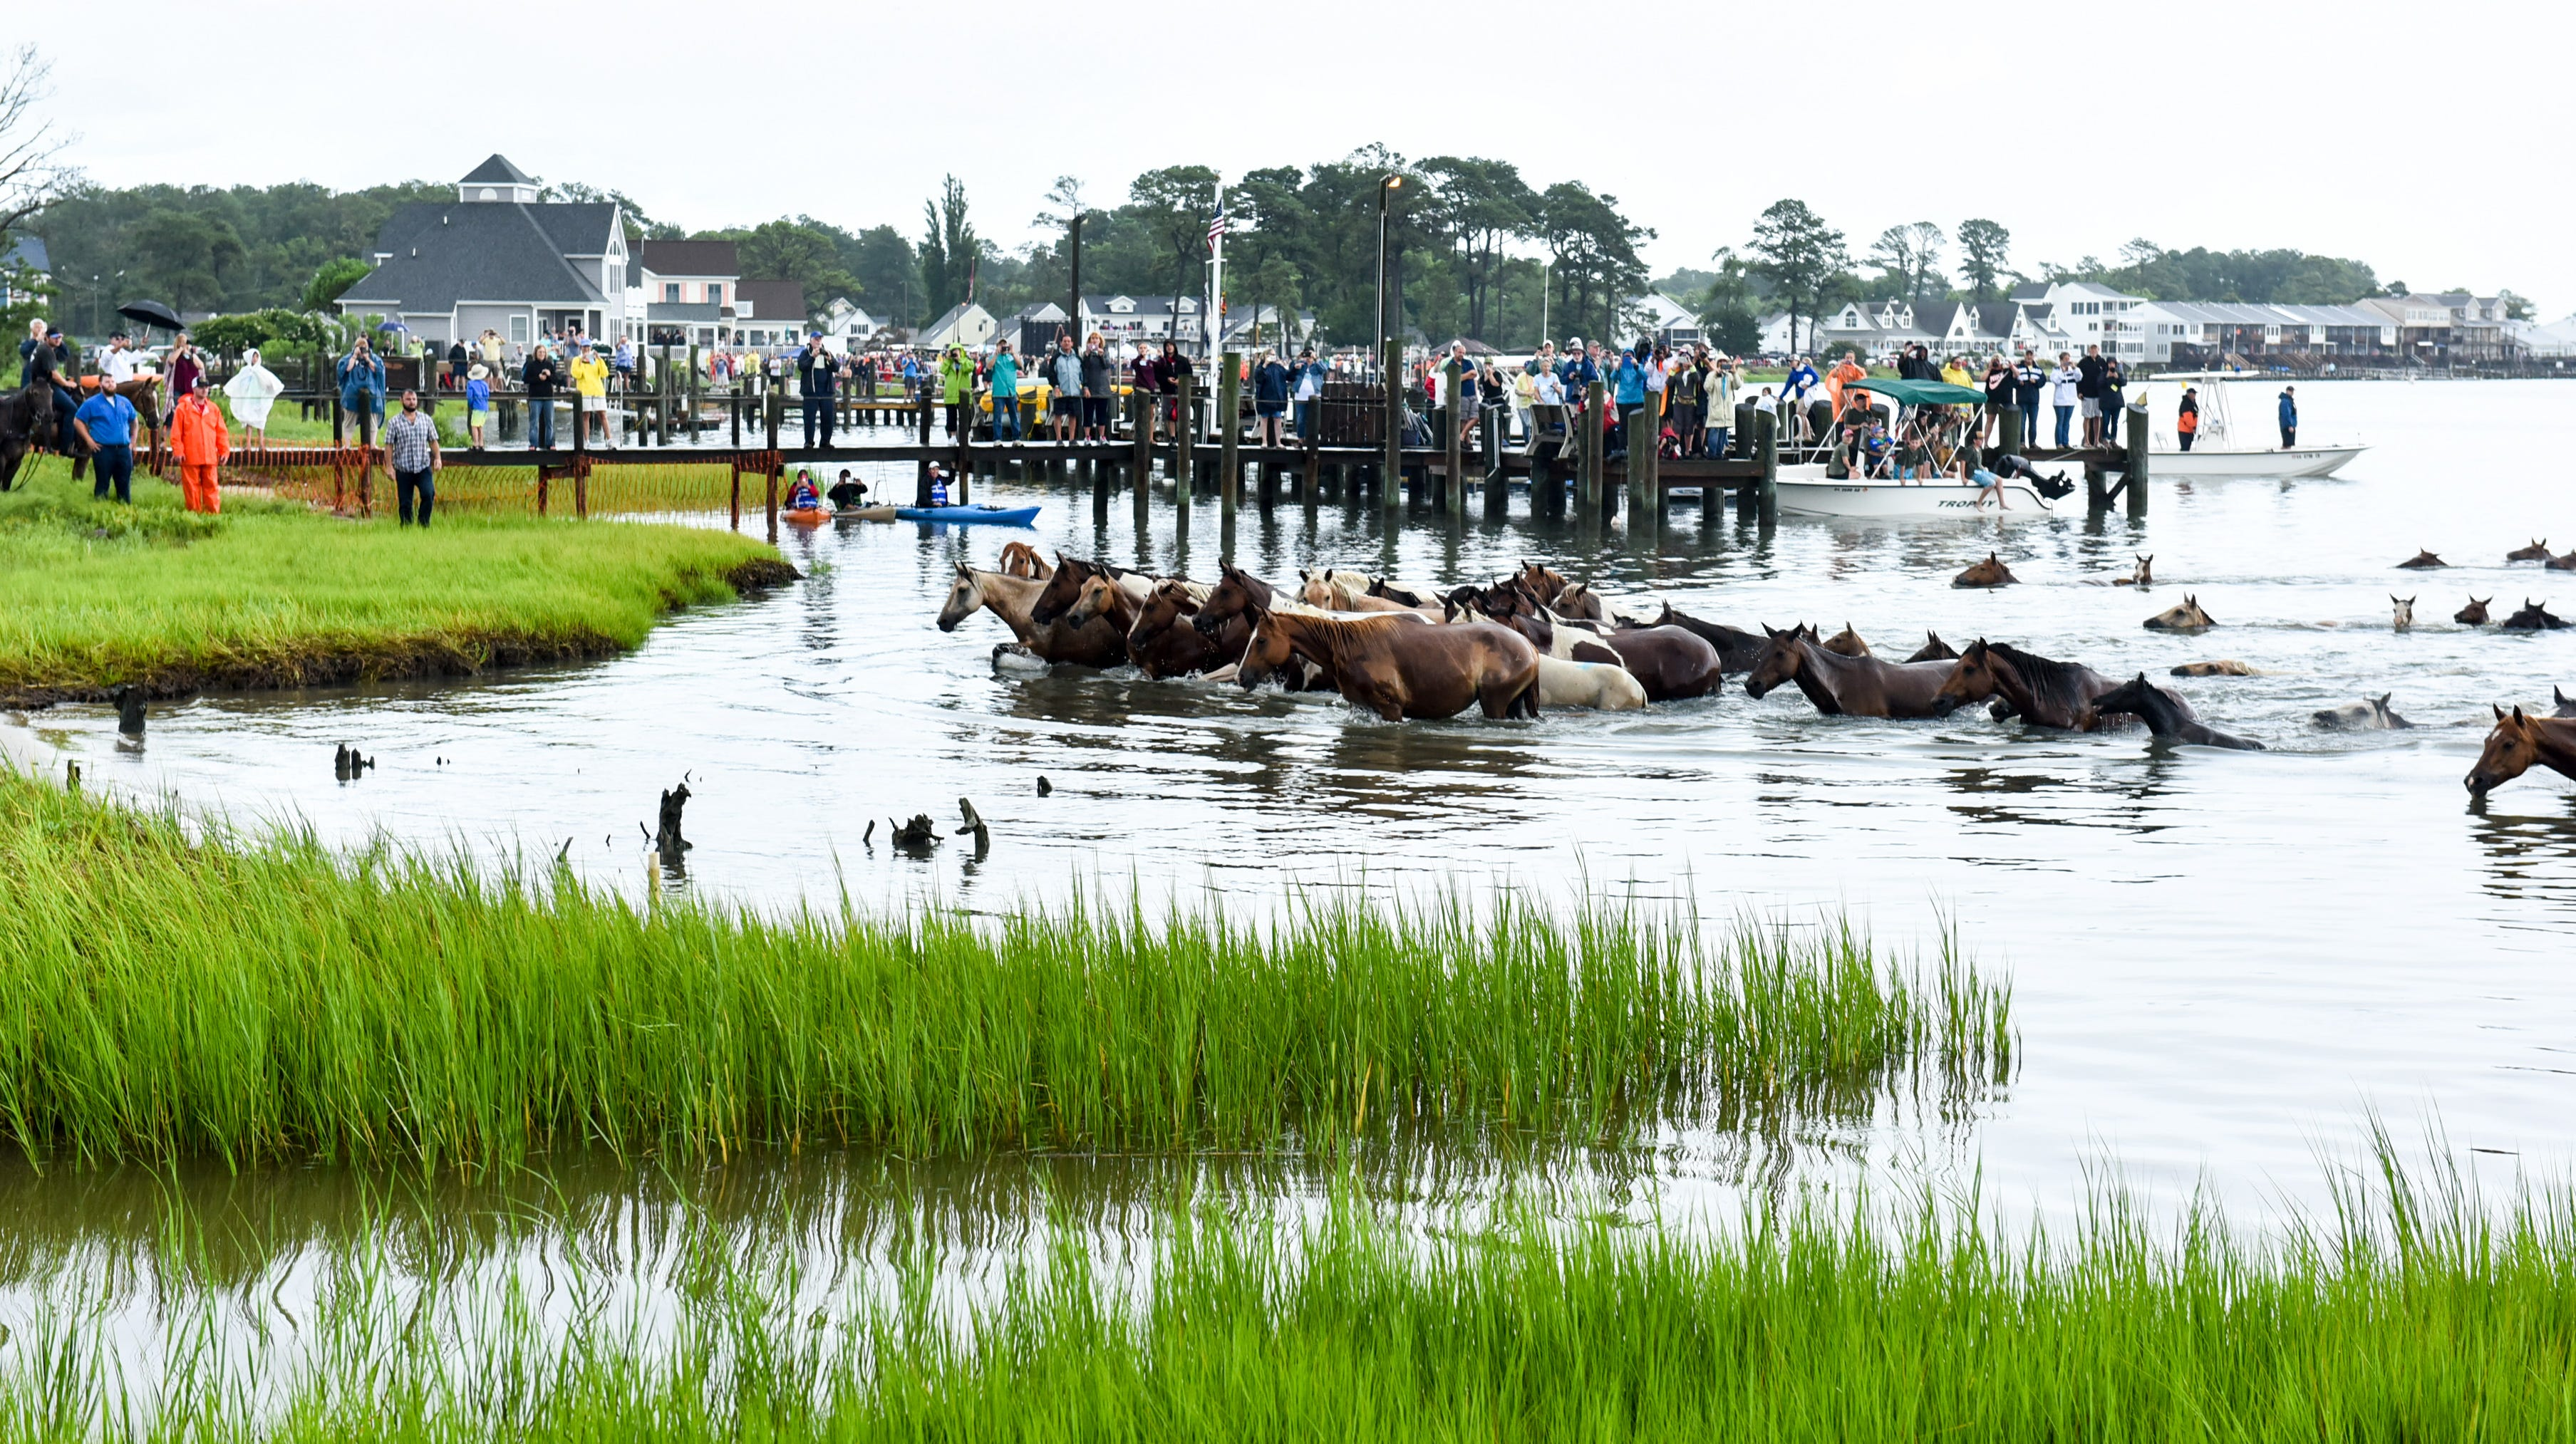 Chincoteague Volunteer Fire Company responds to PETA asking for end of Pony Swim